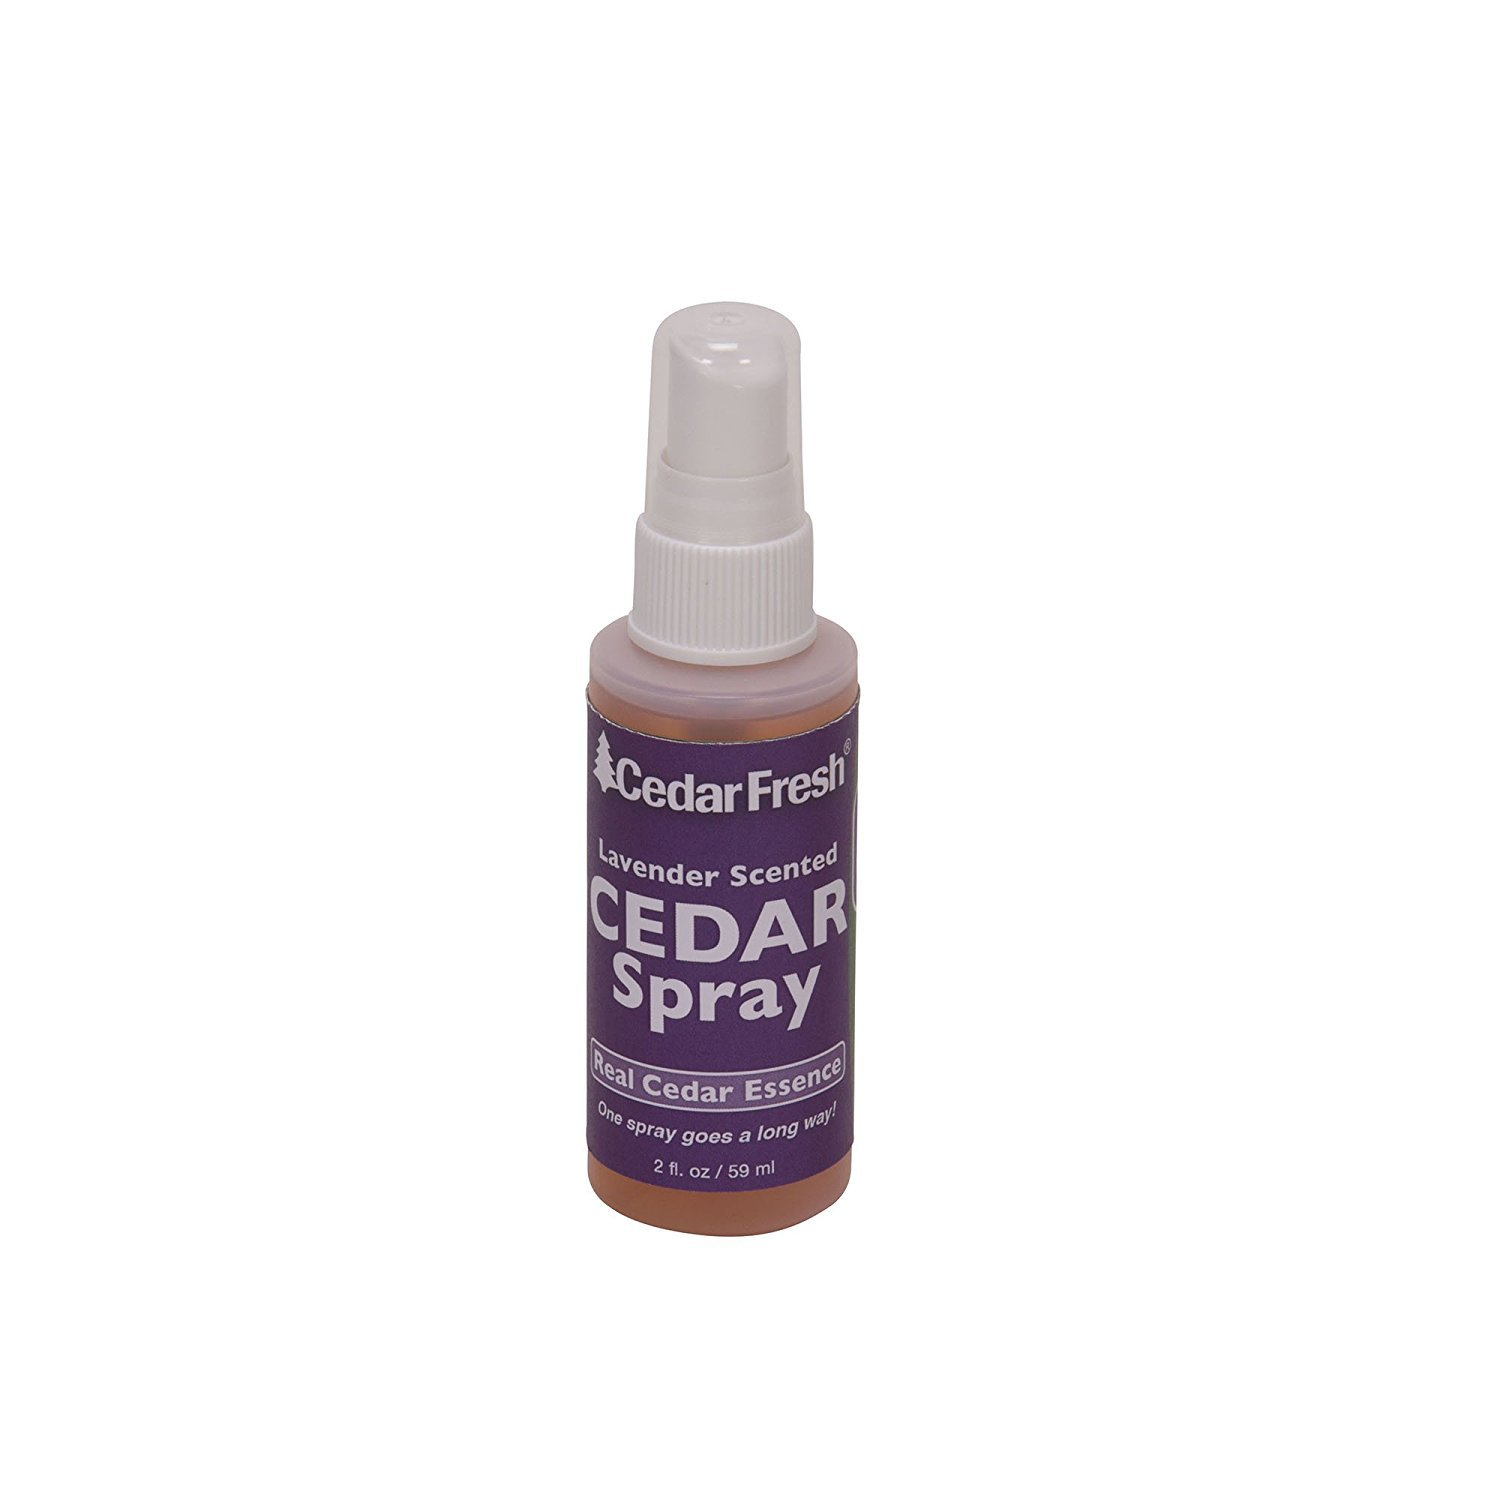 Household Essentials CedarFresh 84802 Cedar Power Spray with Lavender Essence Scent - Protects Closets from Pests - Restores Scent to Cedar Wood Accessories - 2 fl. oz. - Pack of 6